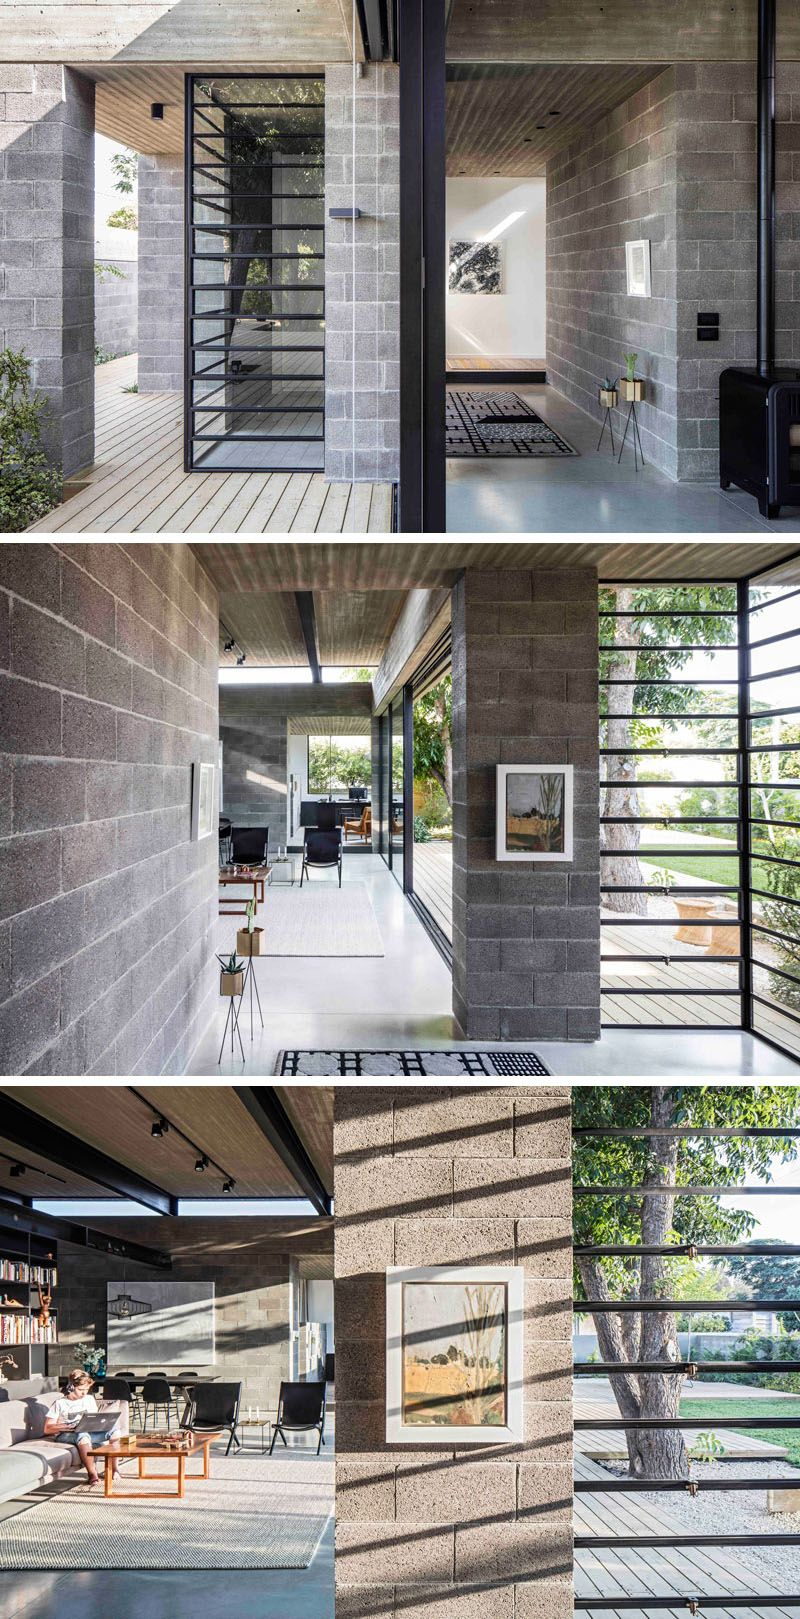 Unfinished Concrete Gives This House An Industrial Feeling Concrete Houses Cinder Block House Contemporary House